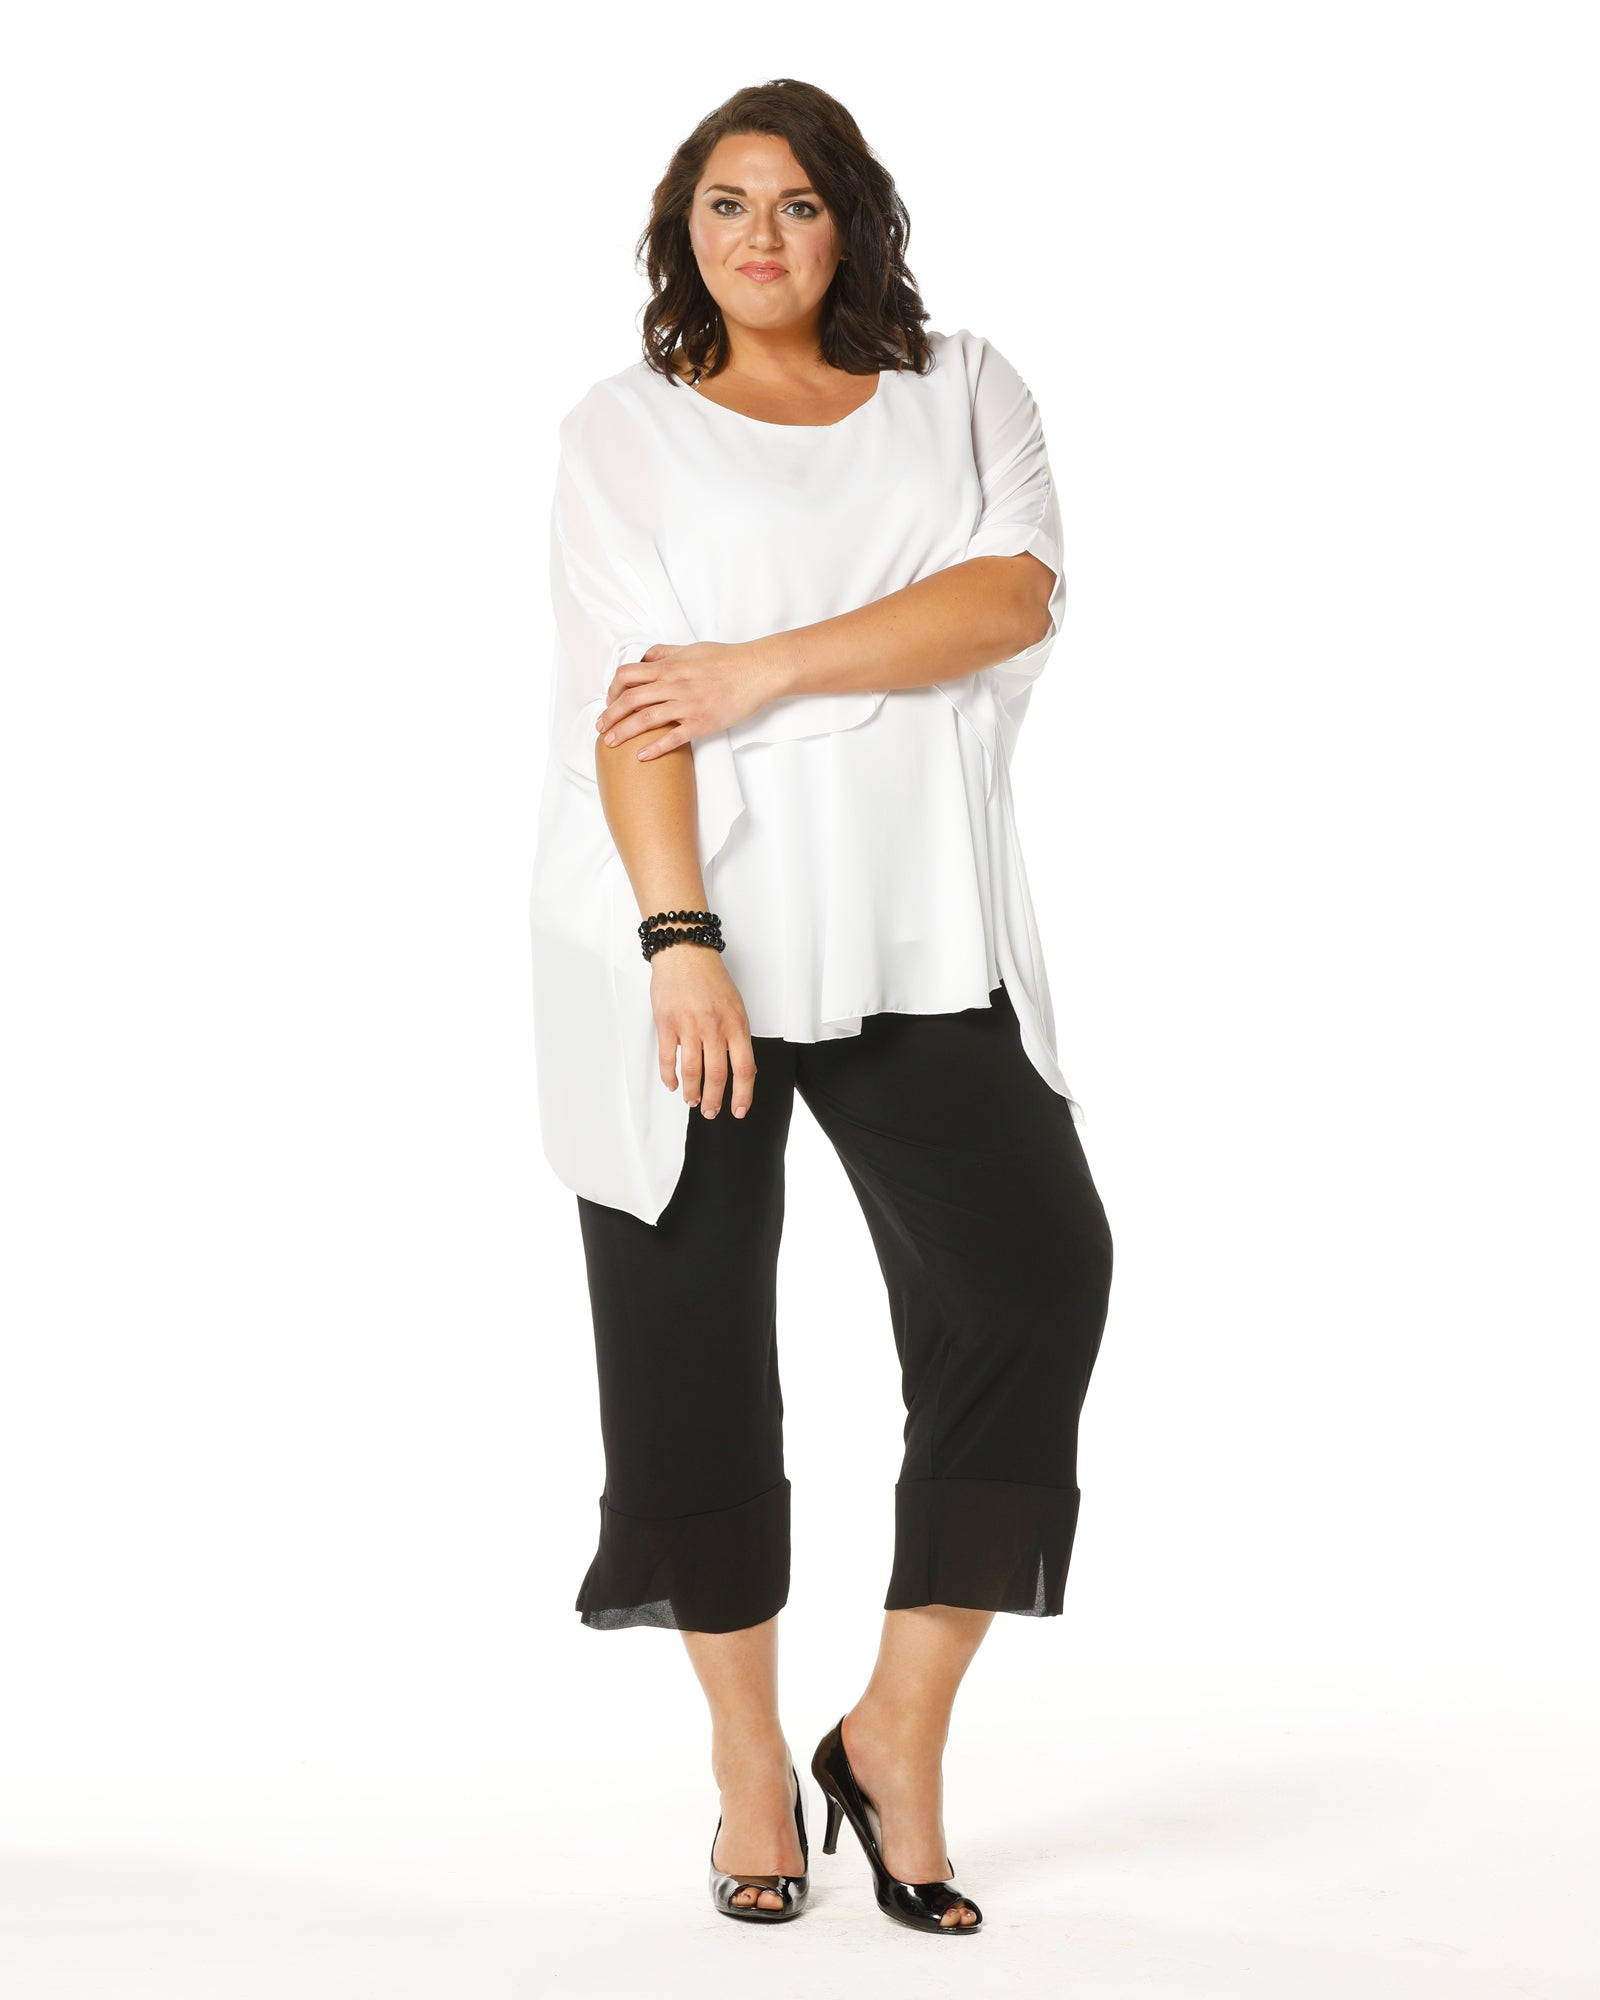 Crop Ayva Chiffon Pants -Black last size 18 50% off